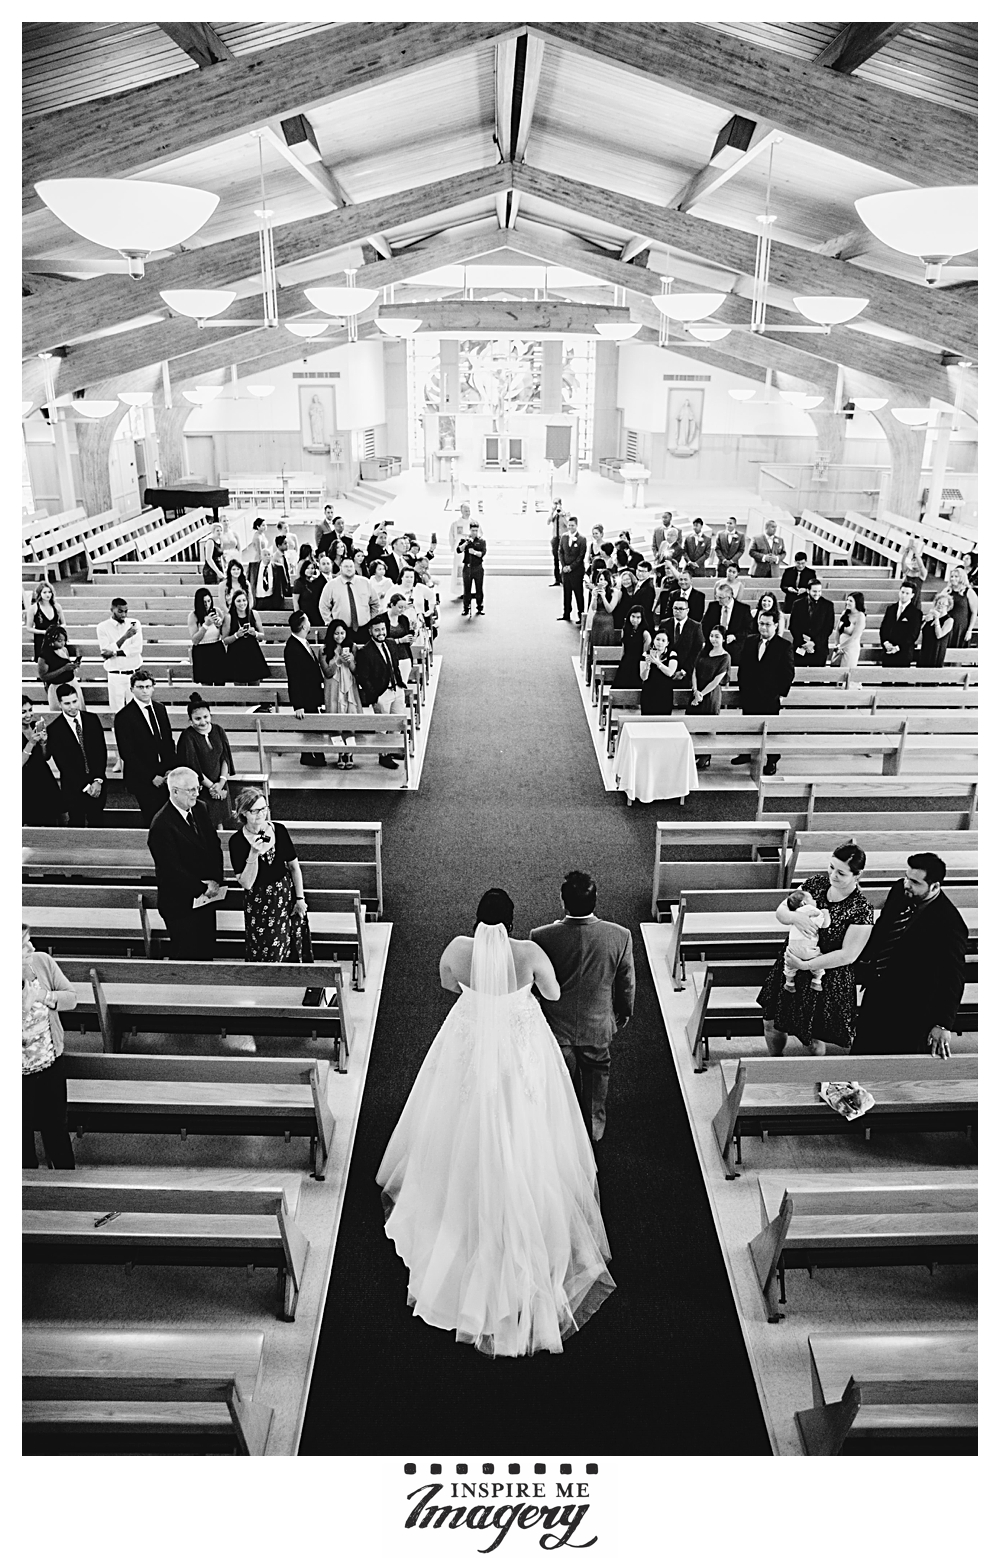 The bride makes her way down the aisle with her father.